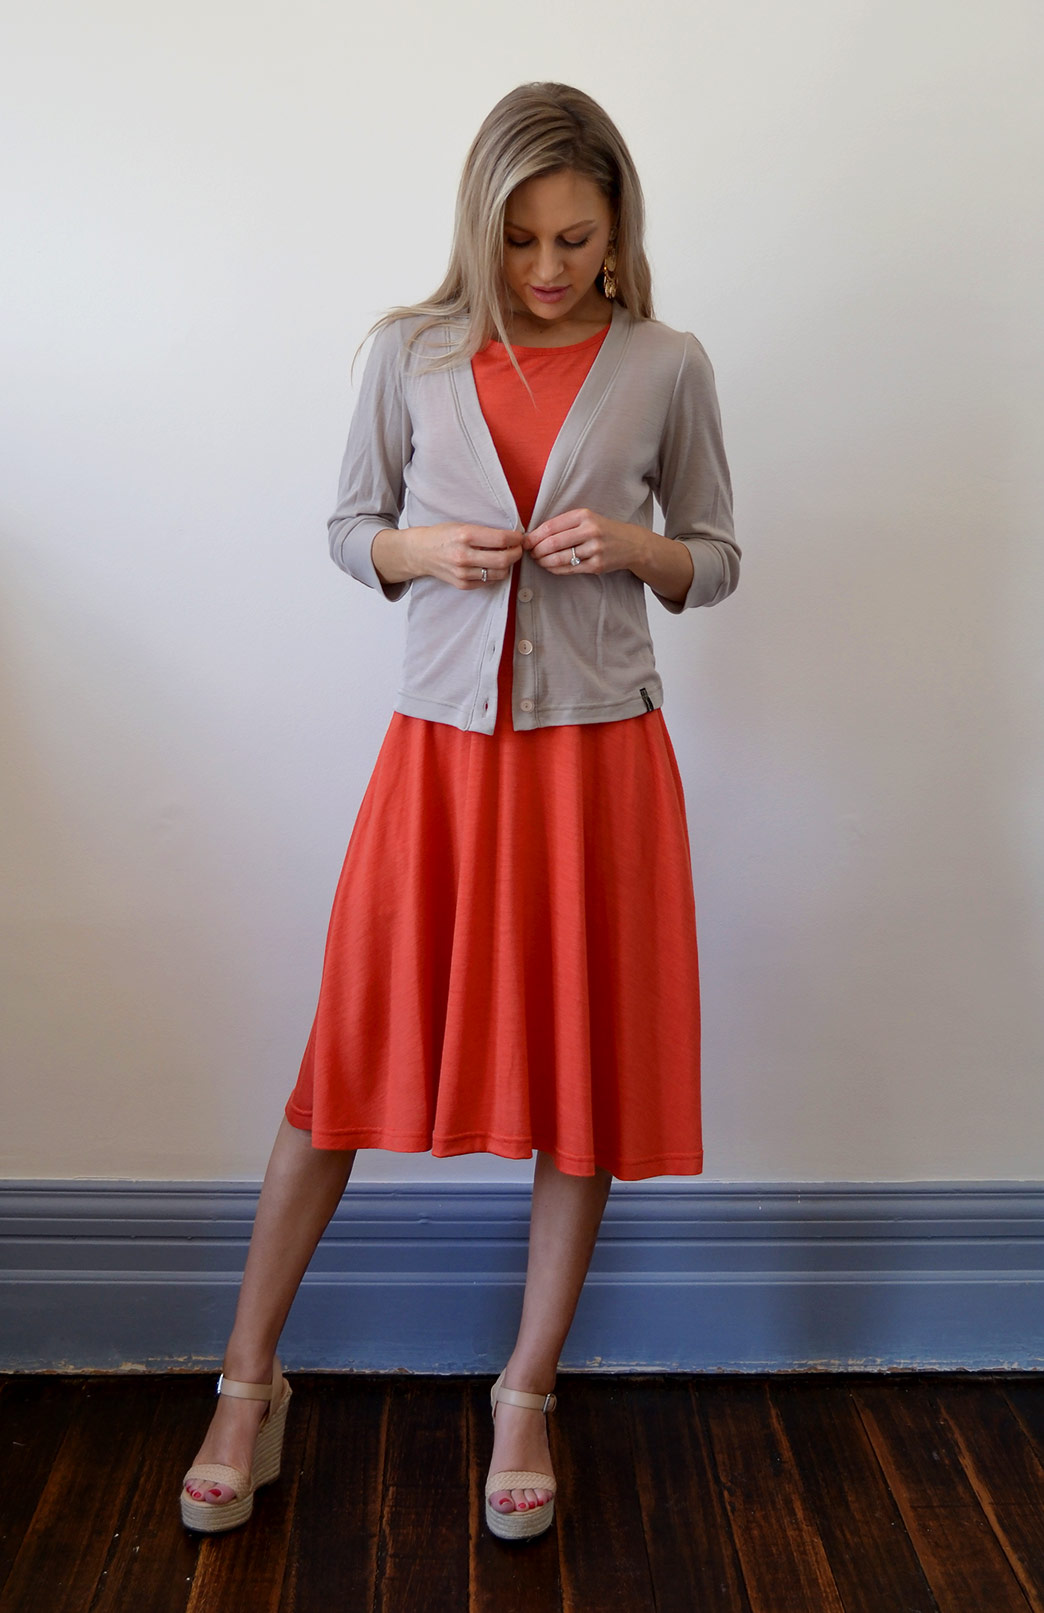 Crop Cardigan - 3/4 Sleeve - Women's Stone Cropped Cardigan with 3/4 Sleeves and Buttons - Smitten Merino Tasmania Australia